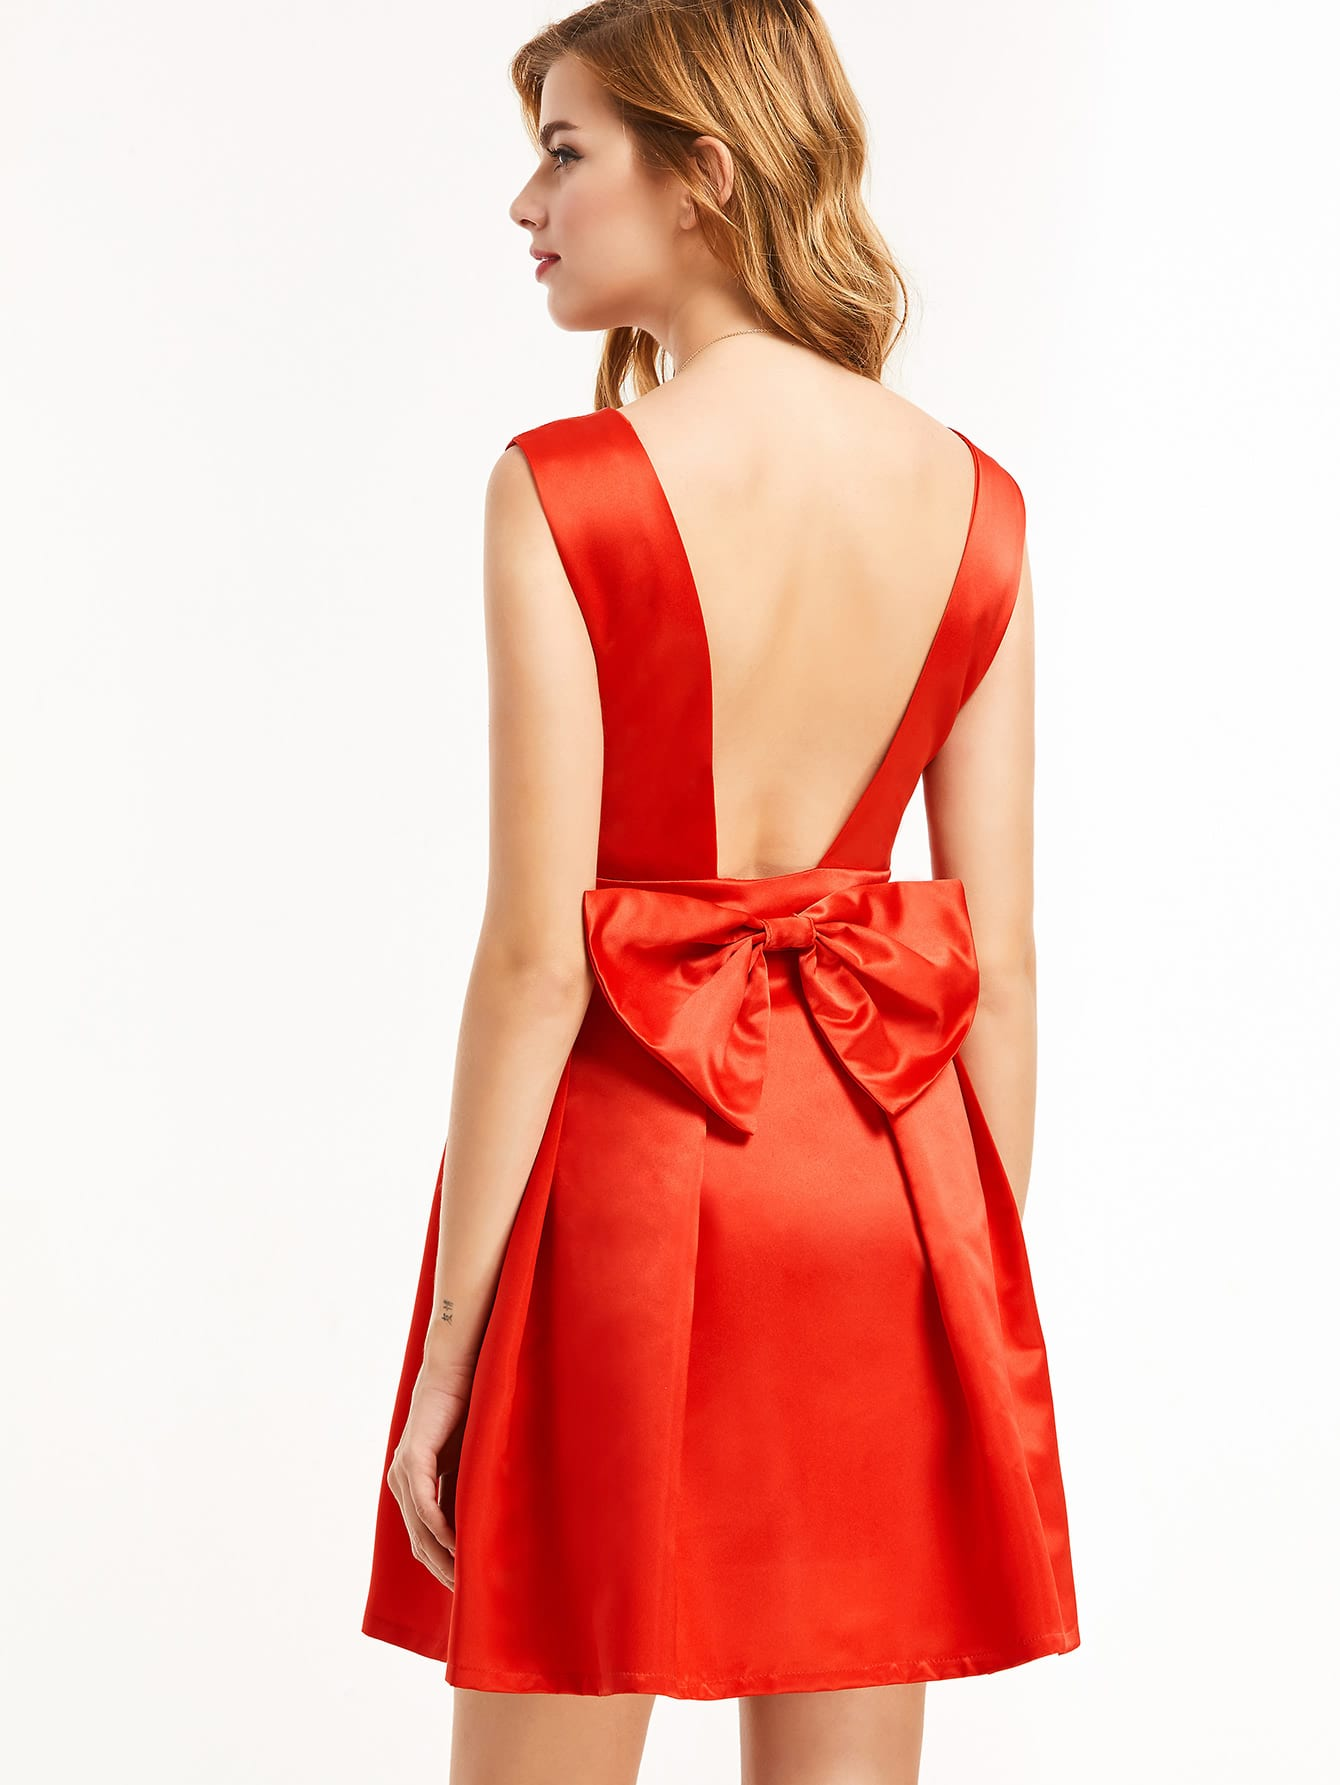 Red Open Back Bow Detail Party Dress dress161122137